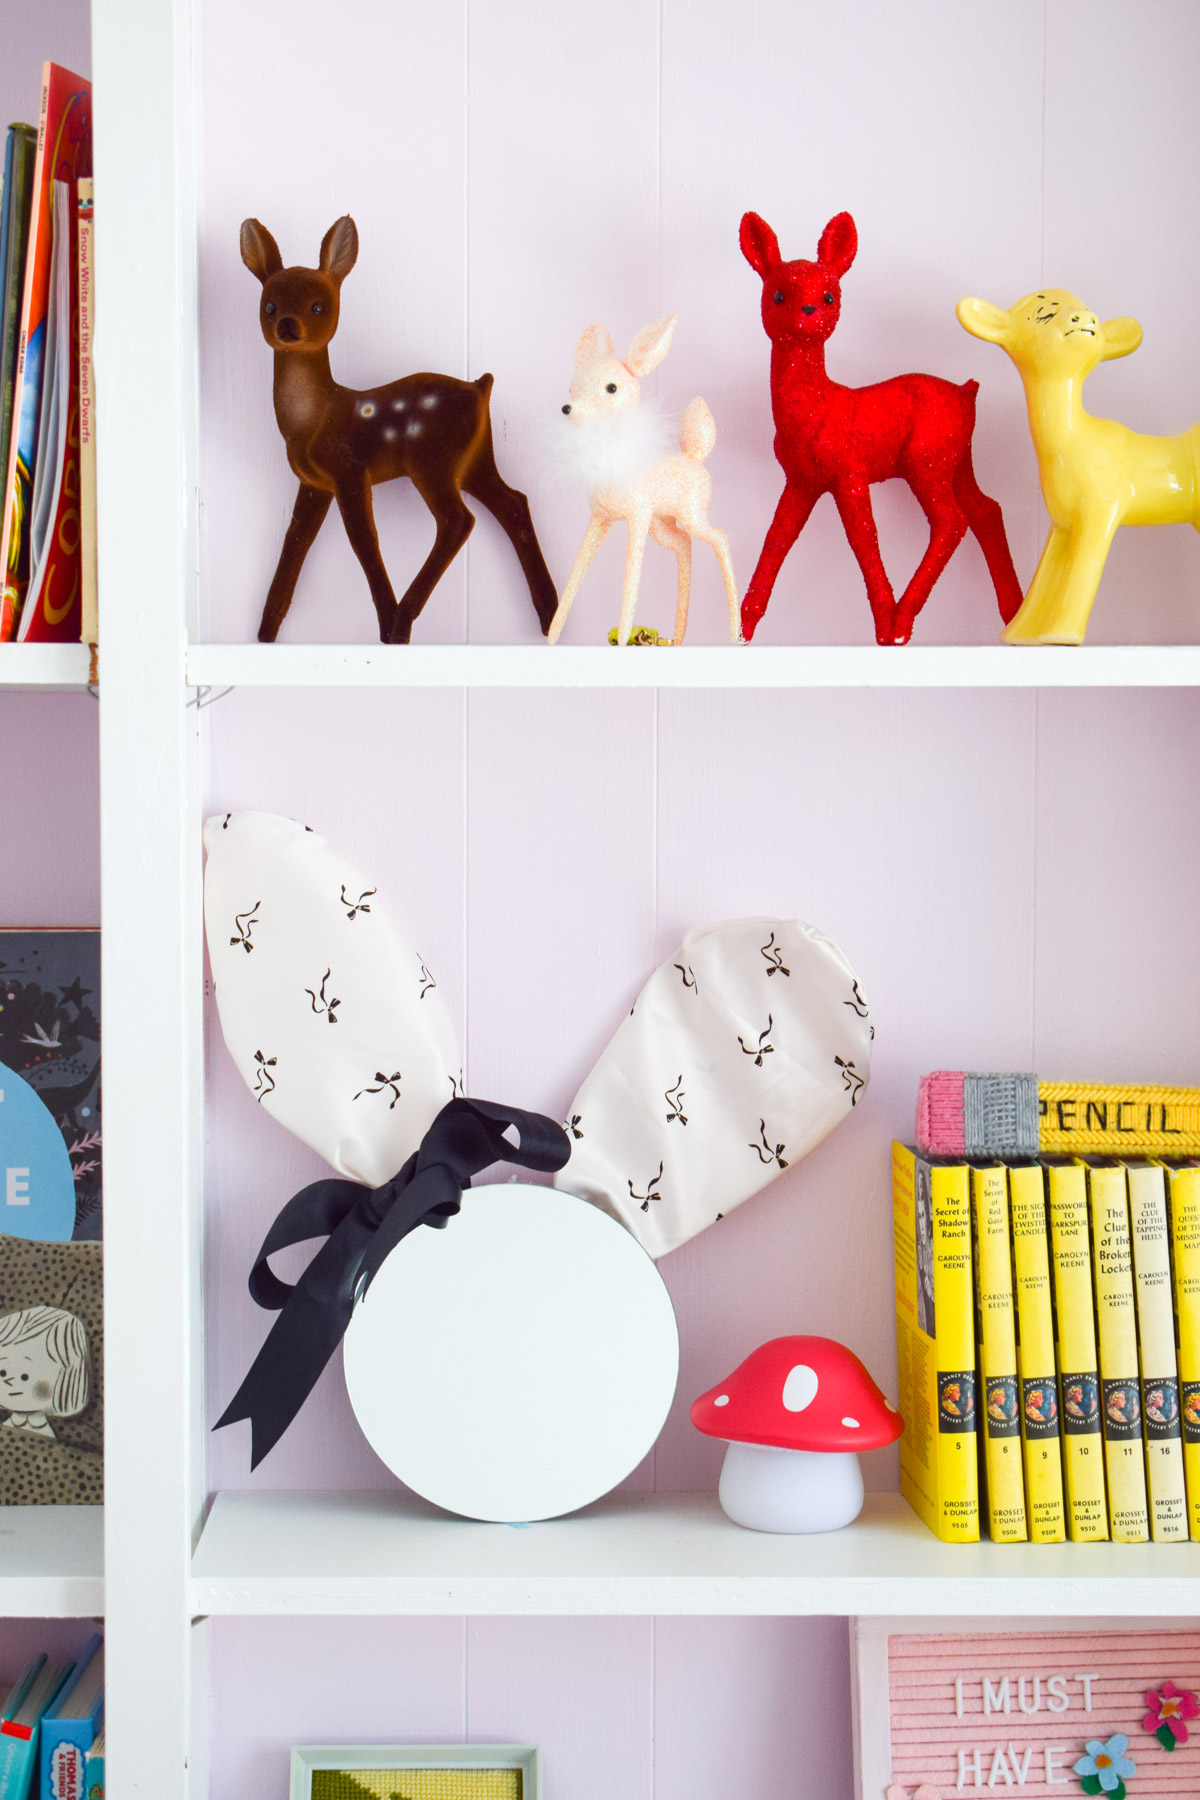 Make your own Bunny ear mirror using items from around the house, in a few short minutes! You could easily turn any mirror into one!